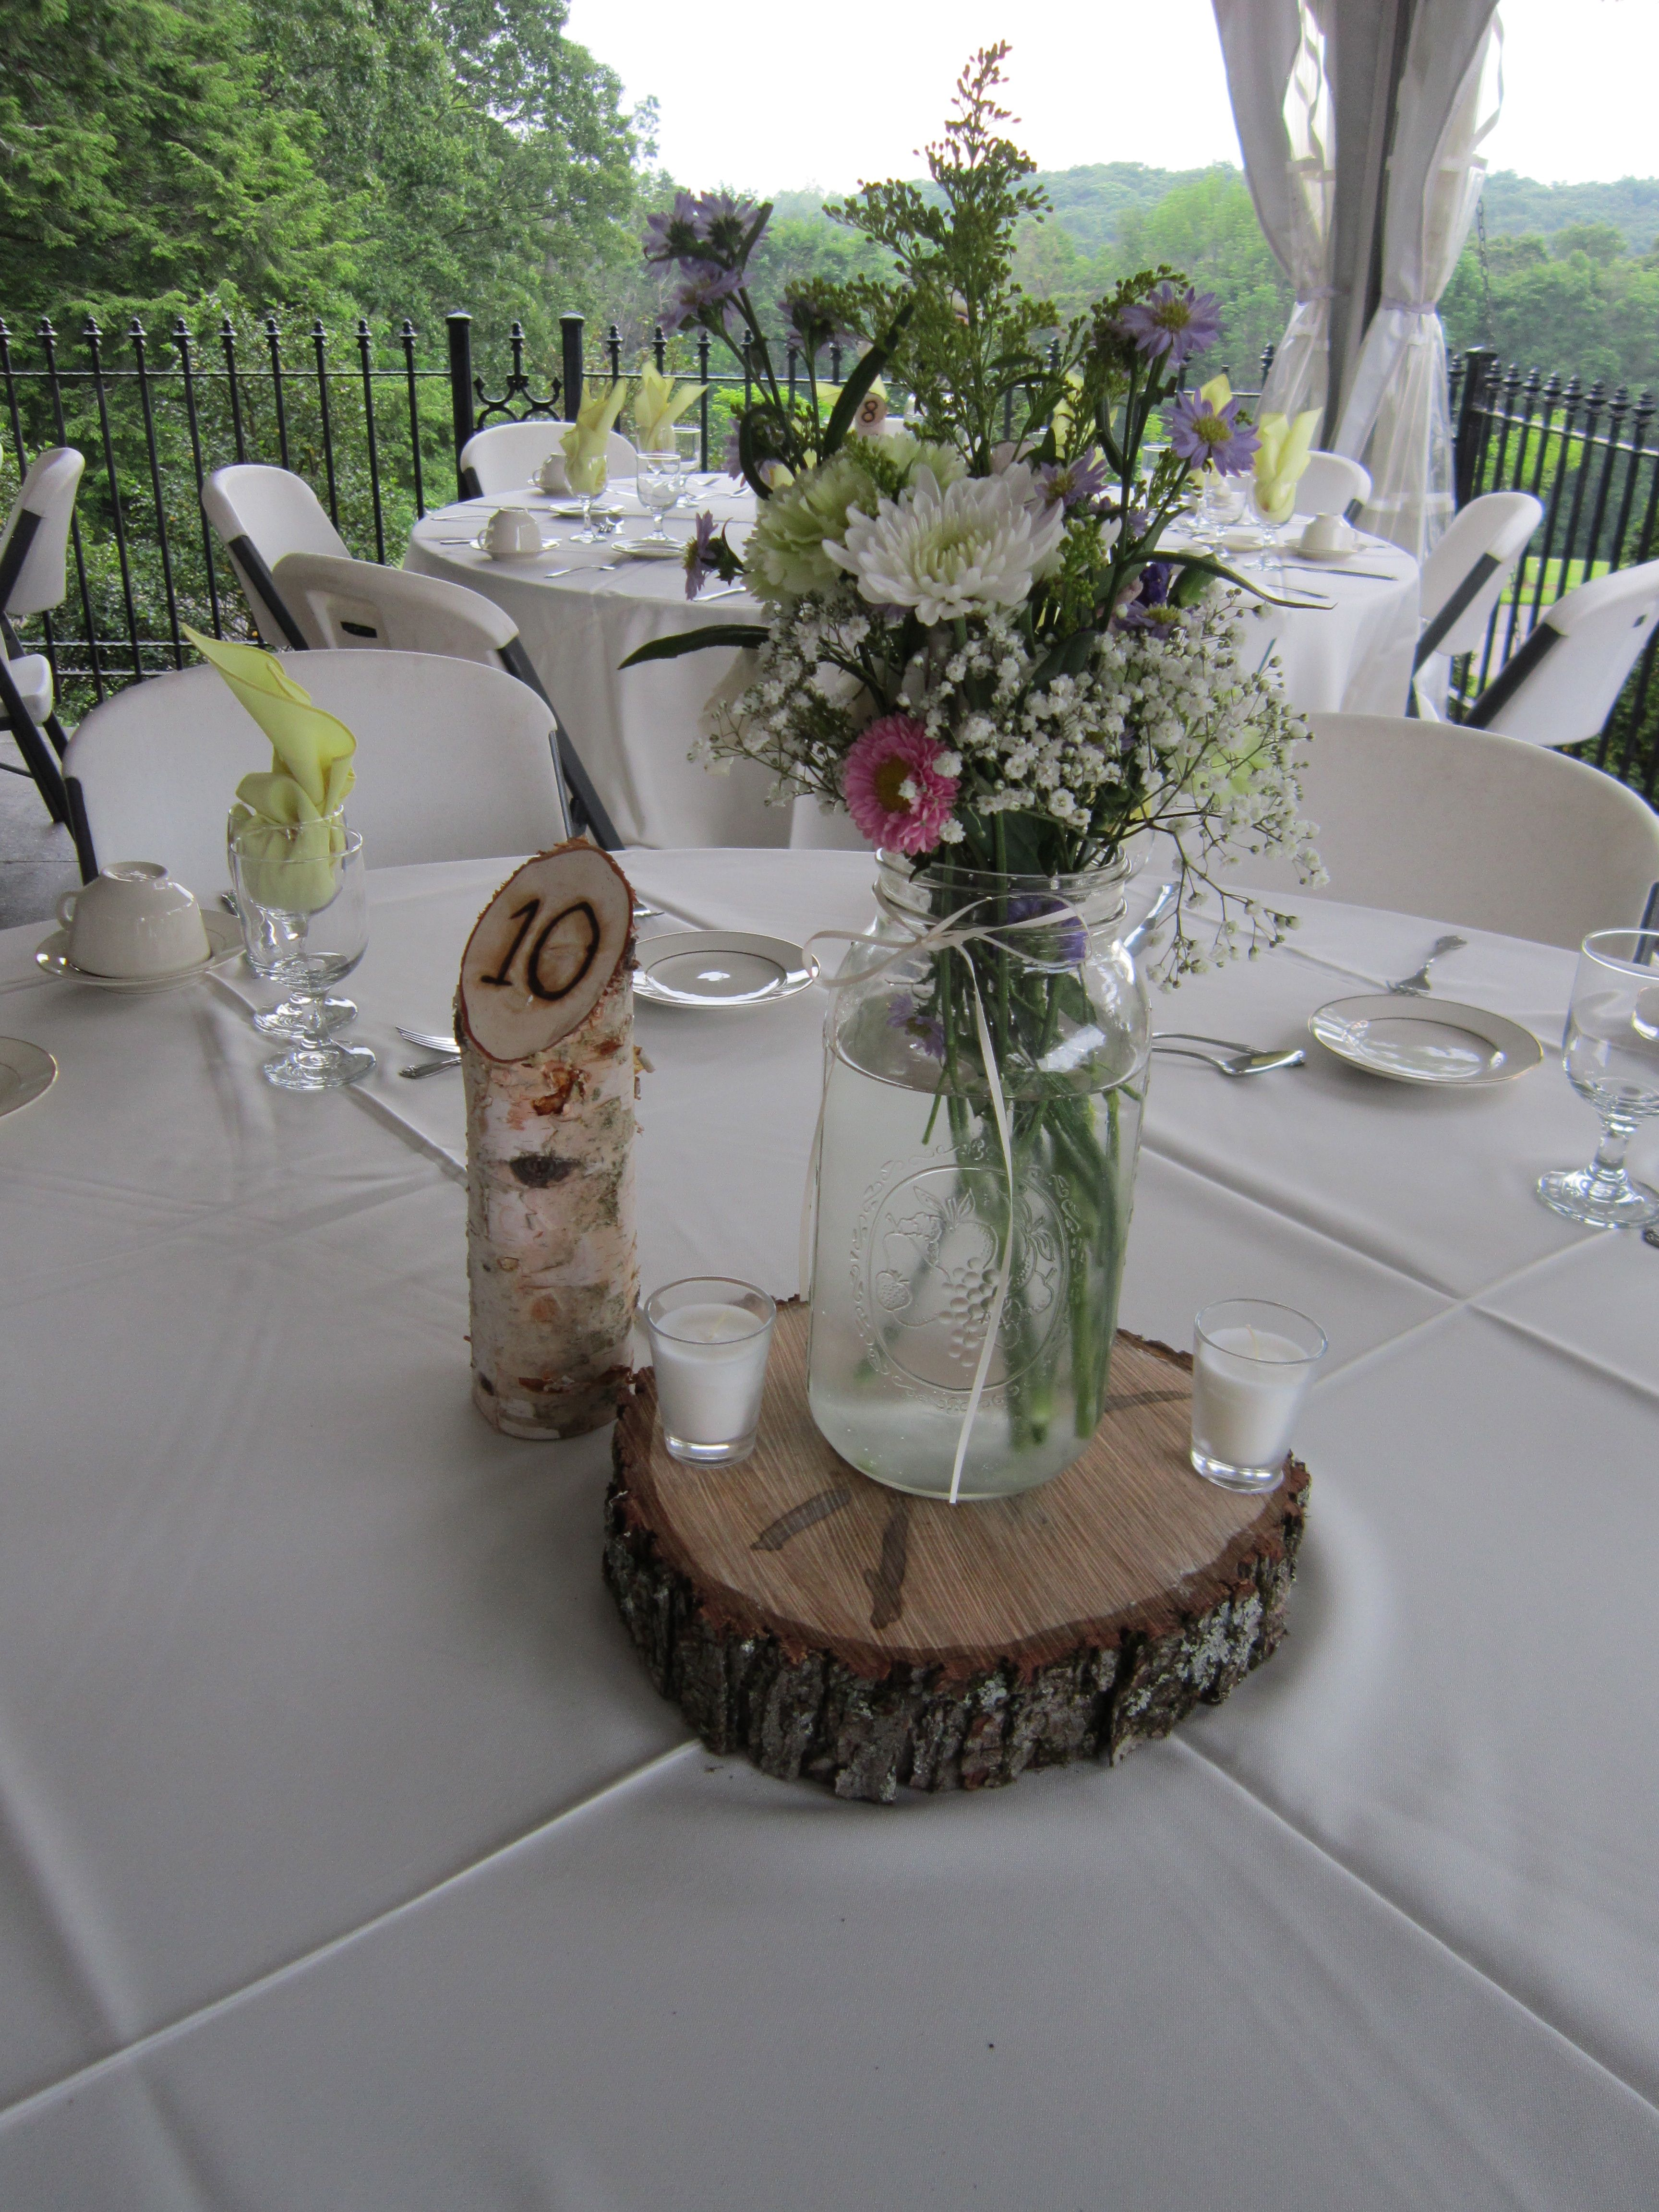 Mason Jar With Fresh Flowers On A Wooden Cookie With A Birch Branch Table Number Wickham Wedding Themes Rustic Rustic Country Wedding Mason Jar Decorations